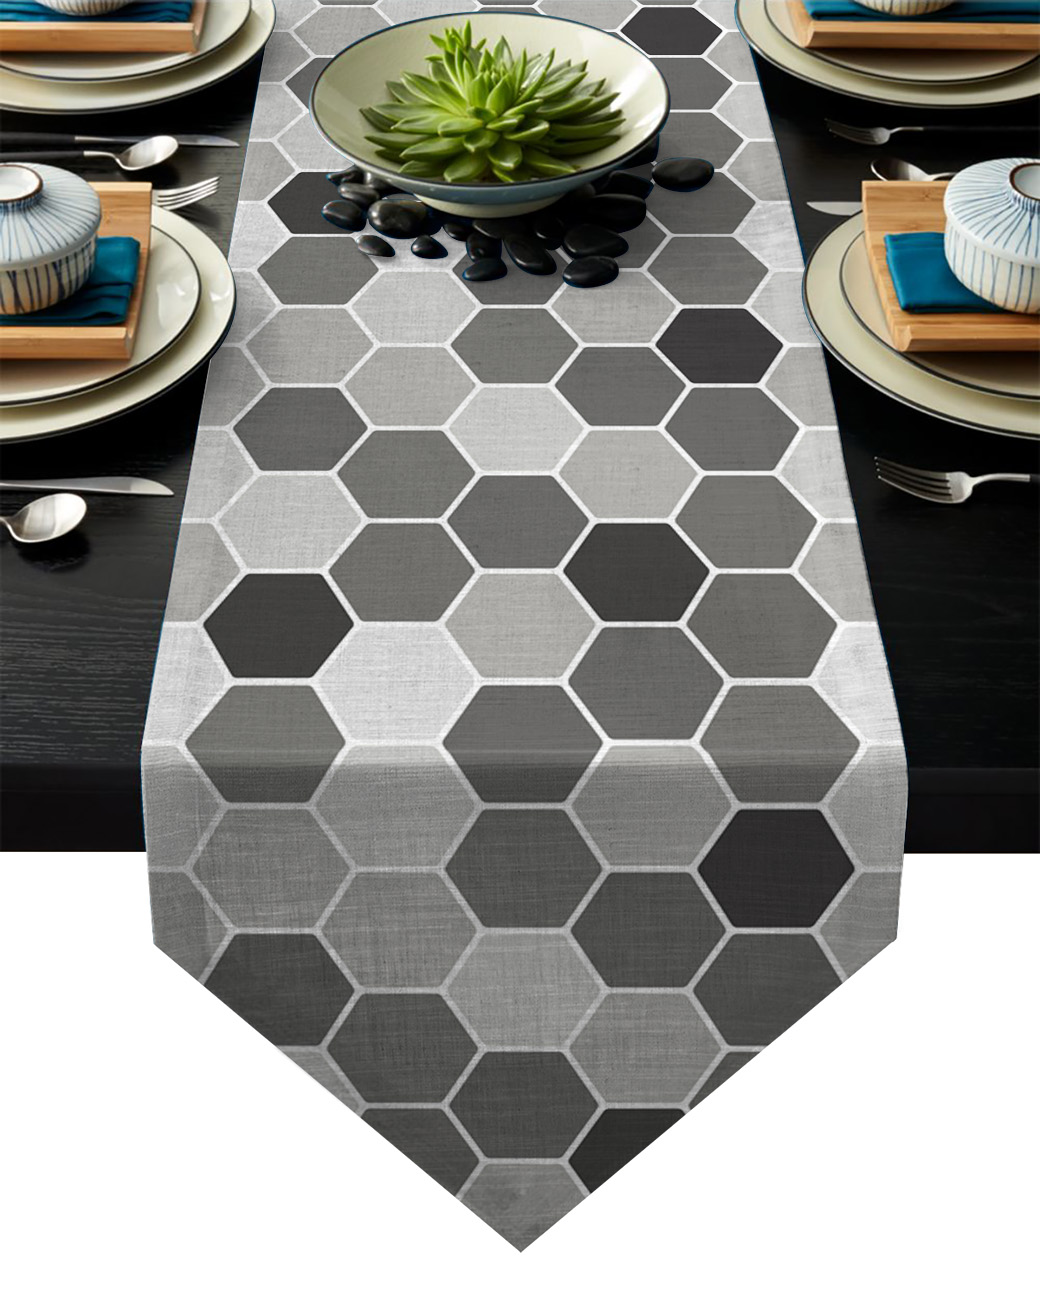 Grey Honeycomb Wedding Party Table Runner Coffee Table Decoration Home Garden Table Cloth Table Runners Aliexpress